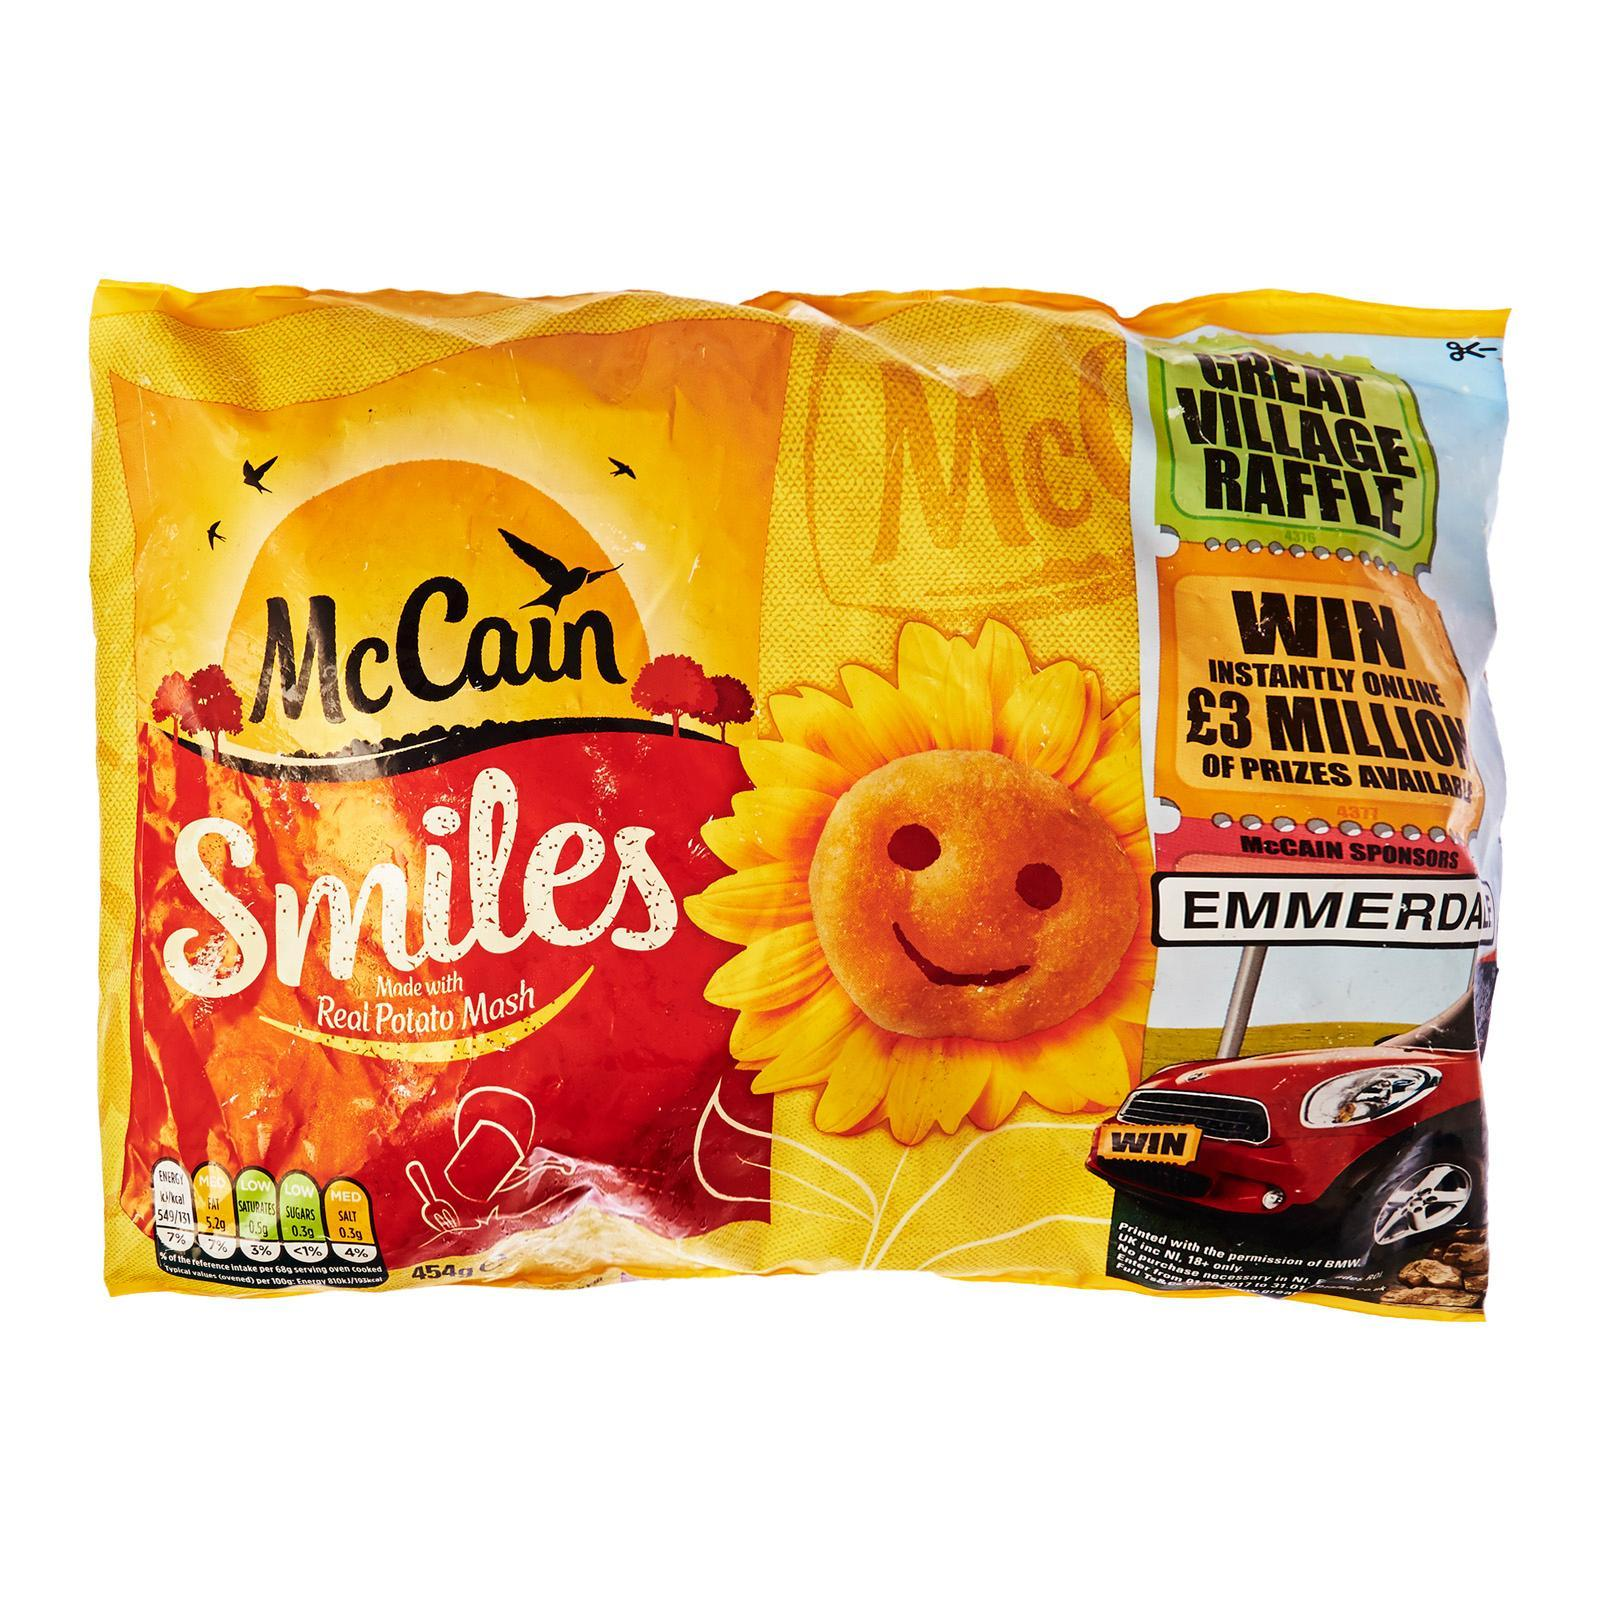 McCain Potato Smiles - Frozen